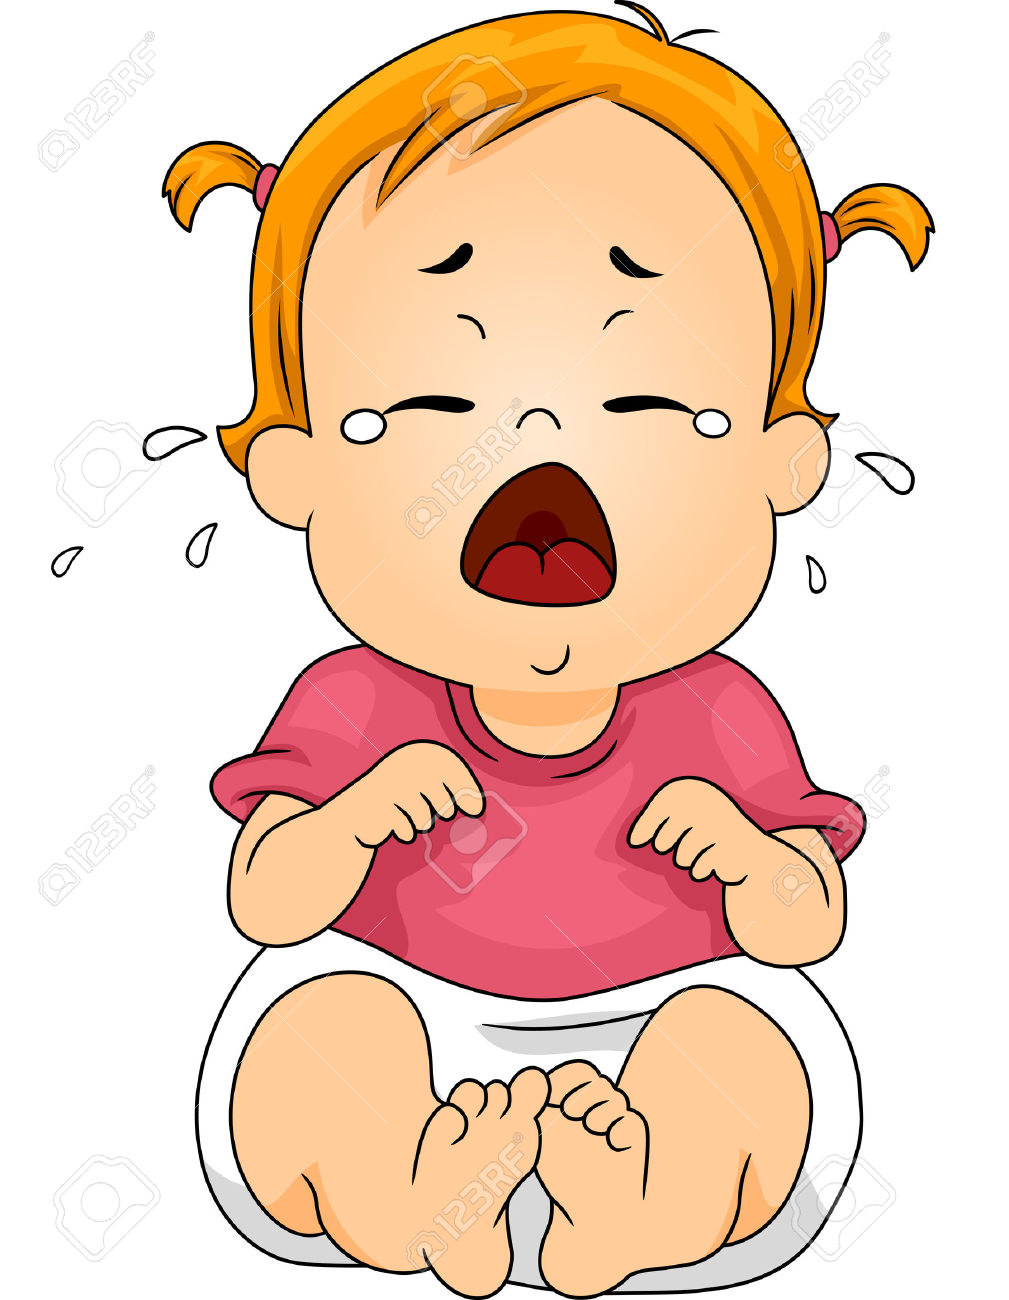 2,570 Crying Baby Stock Vector Illustration And Royalty Free.